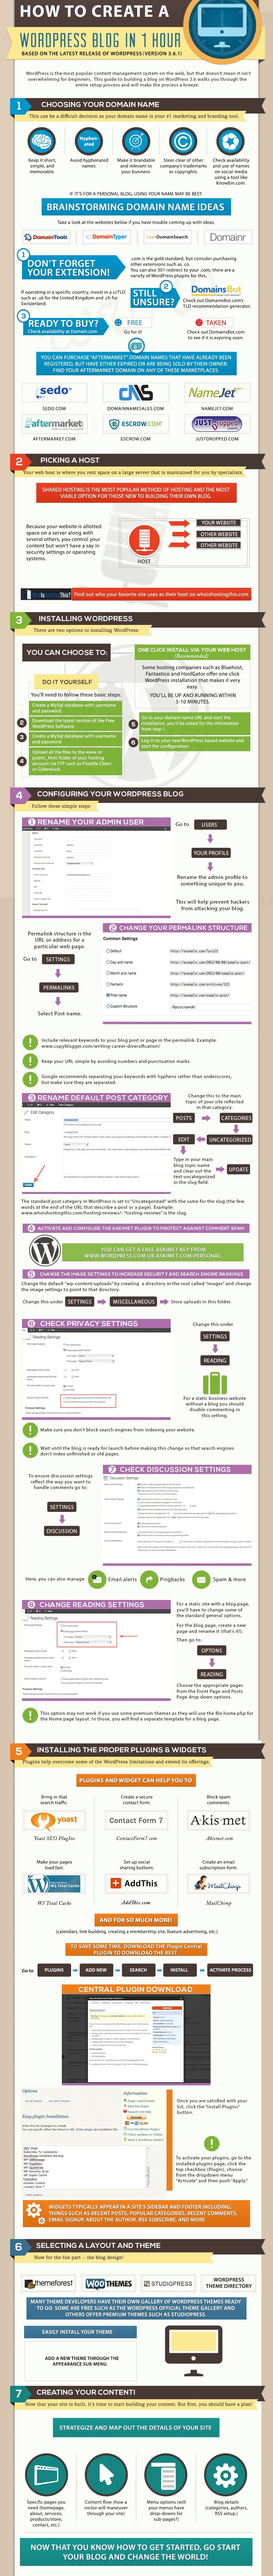 How to Install WordPress - #infographic